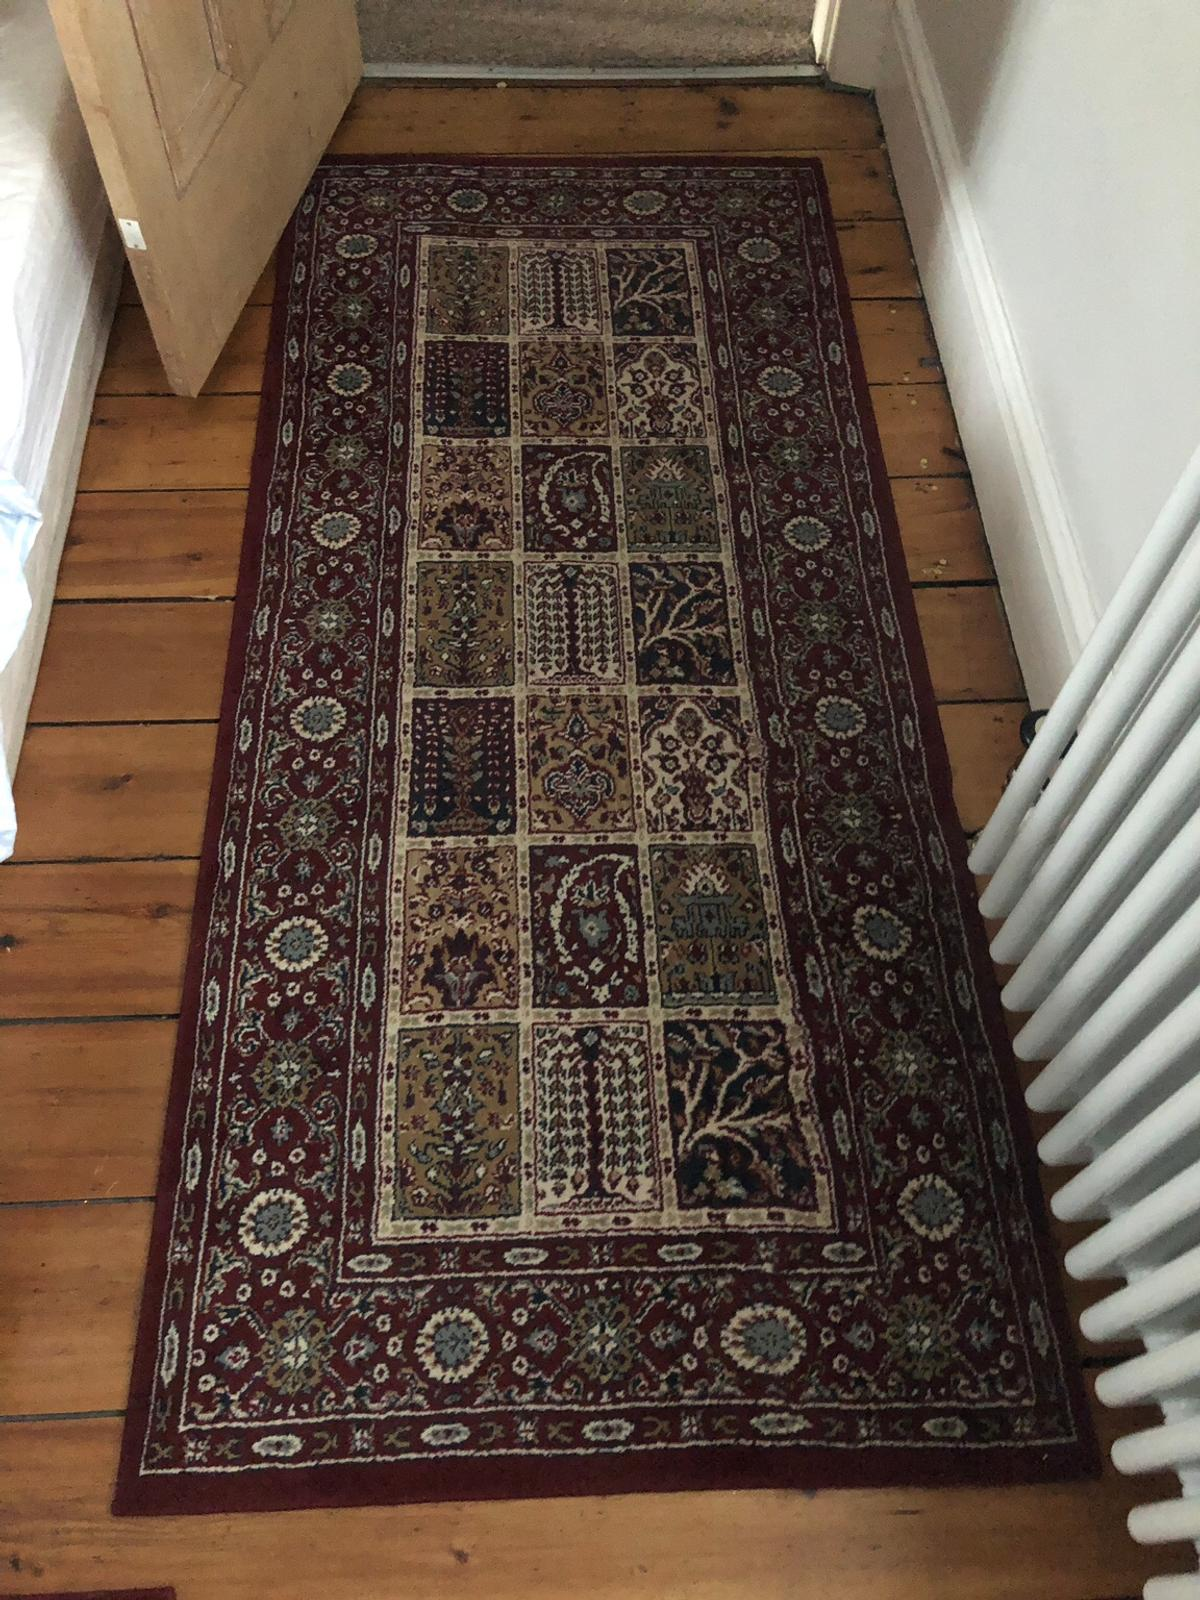 2 x IKEA VALBY RUTA RUGS/RUNNERS in SK7